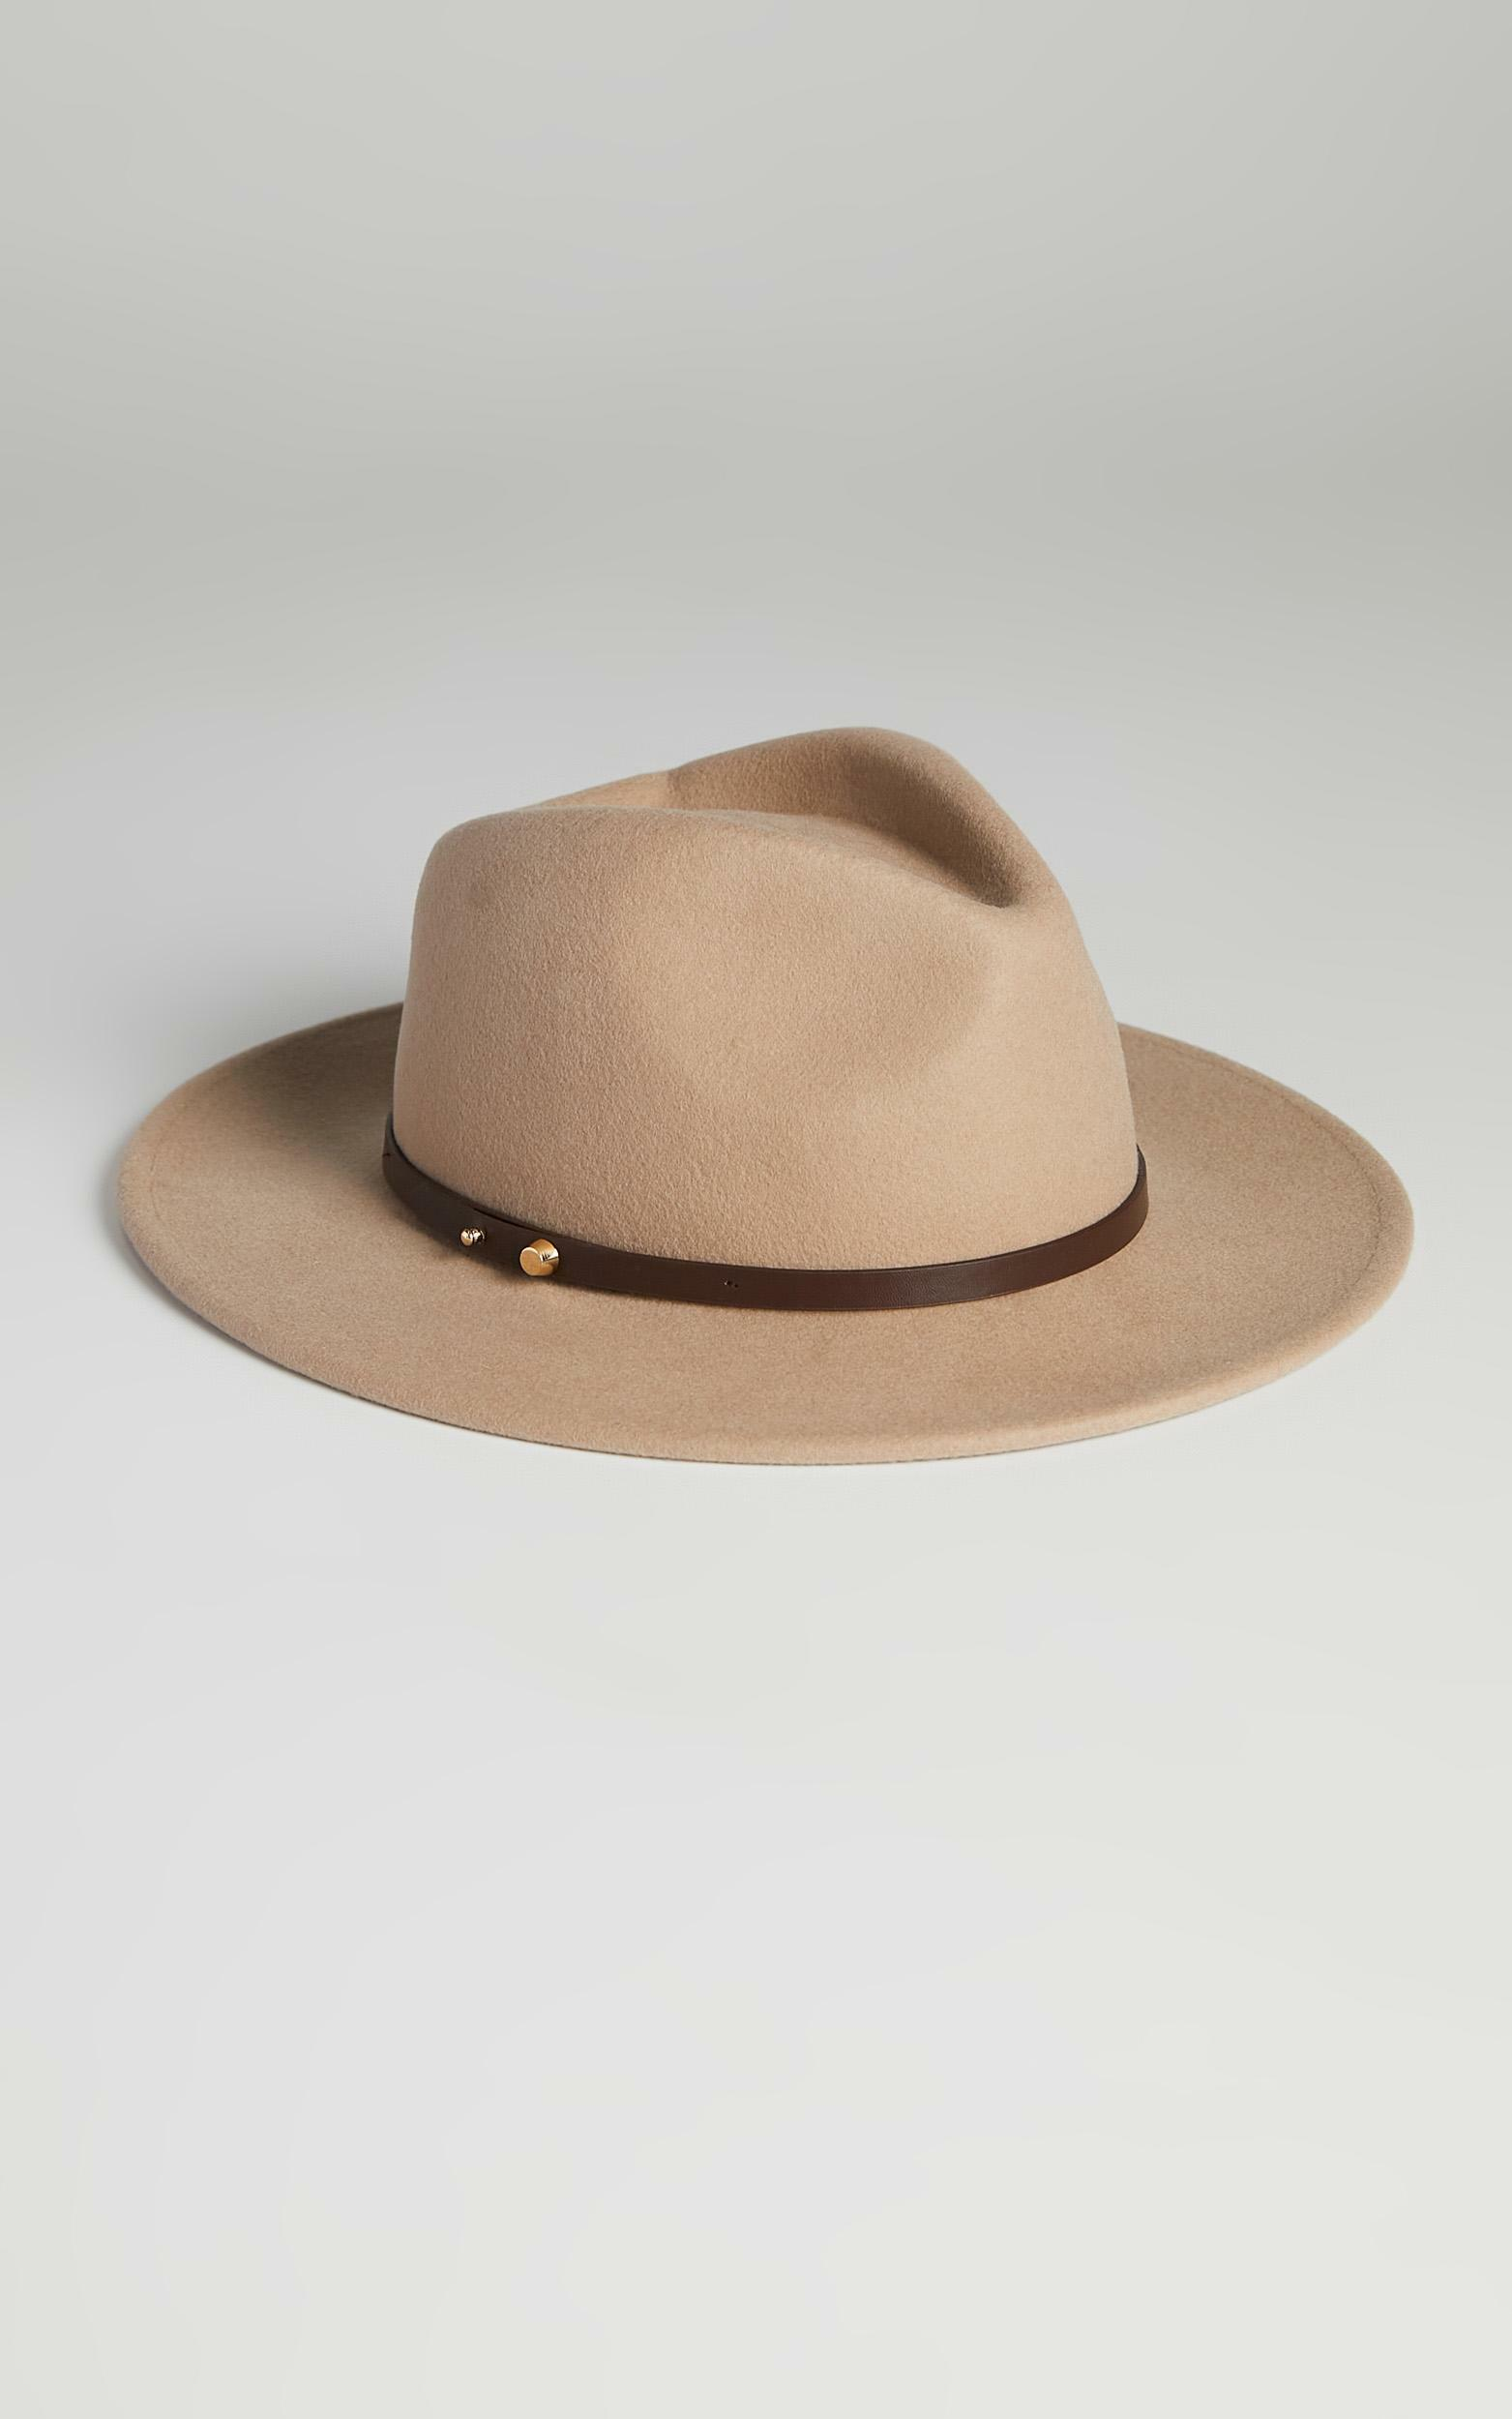 Ace of Something - Oslo Hat in Clay, Beige, hi-res image number null